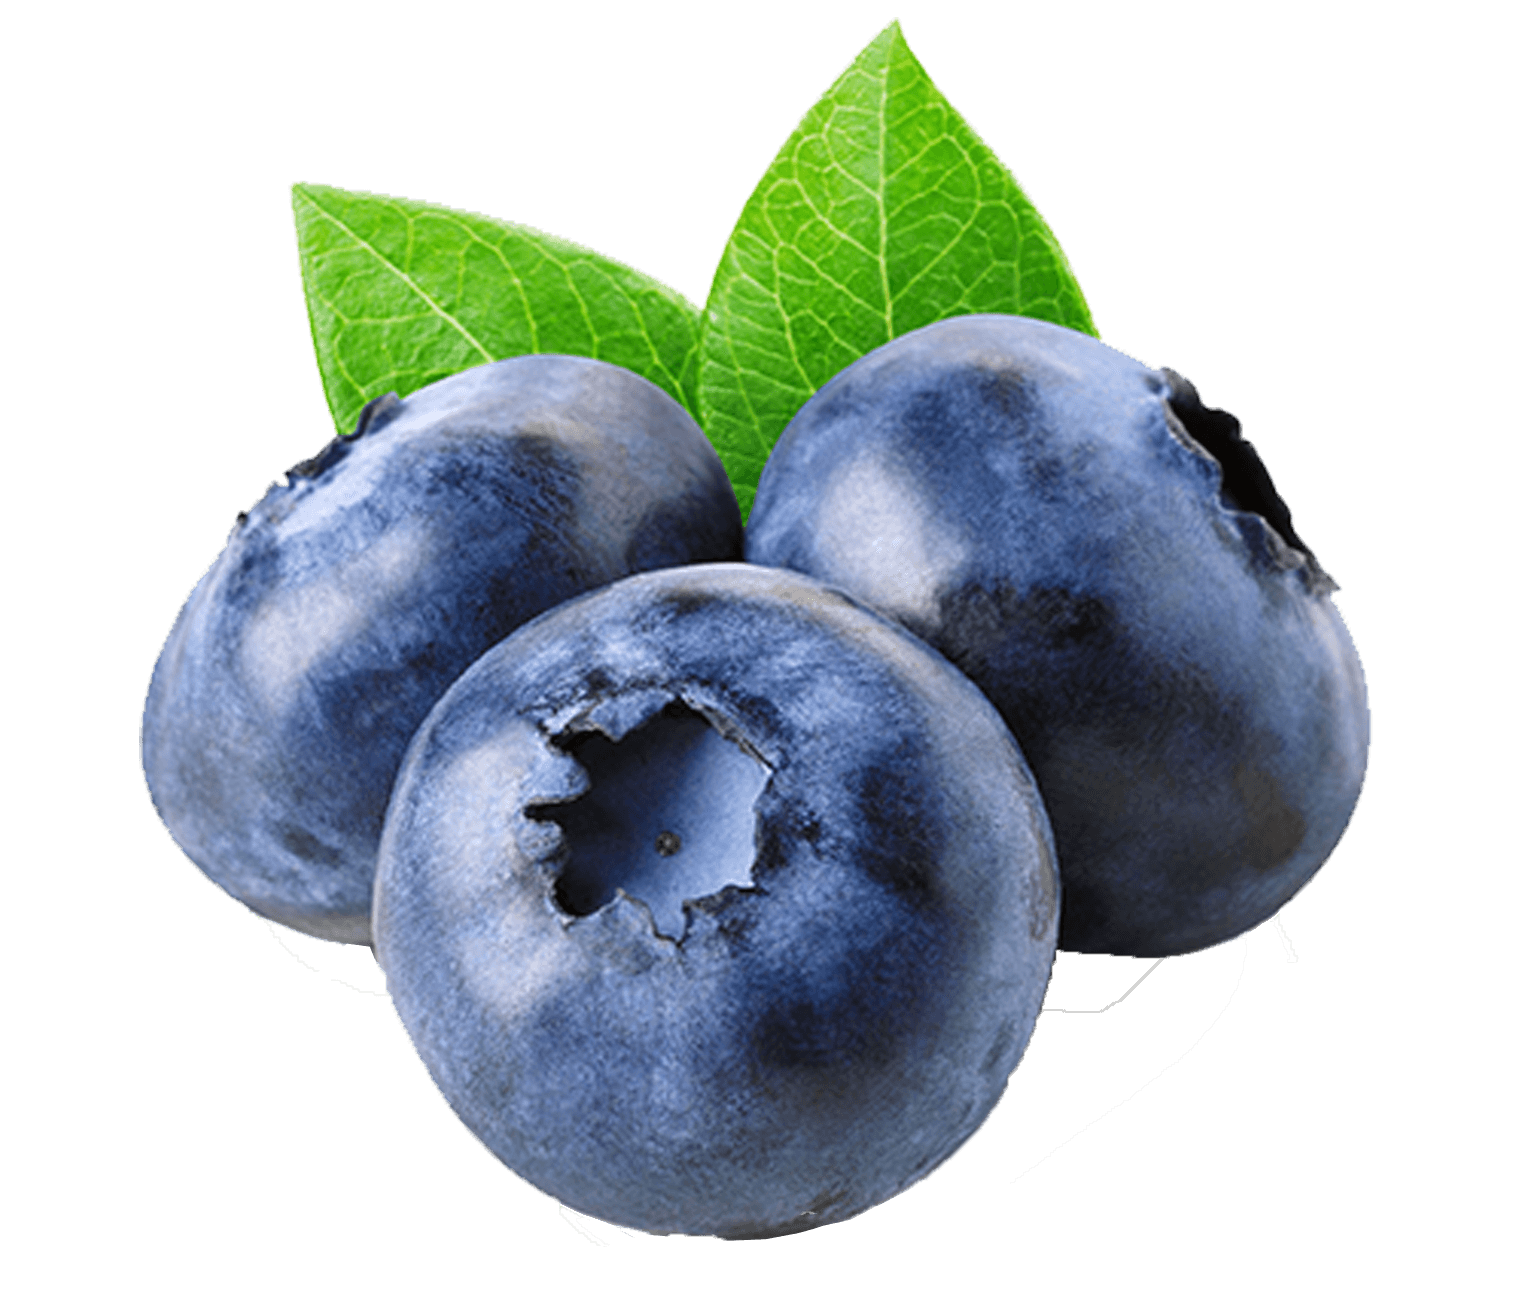 3 blueberries